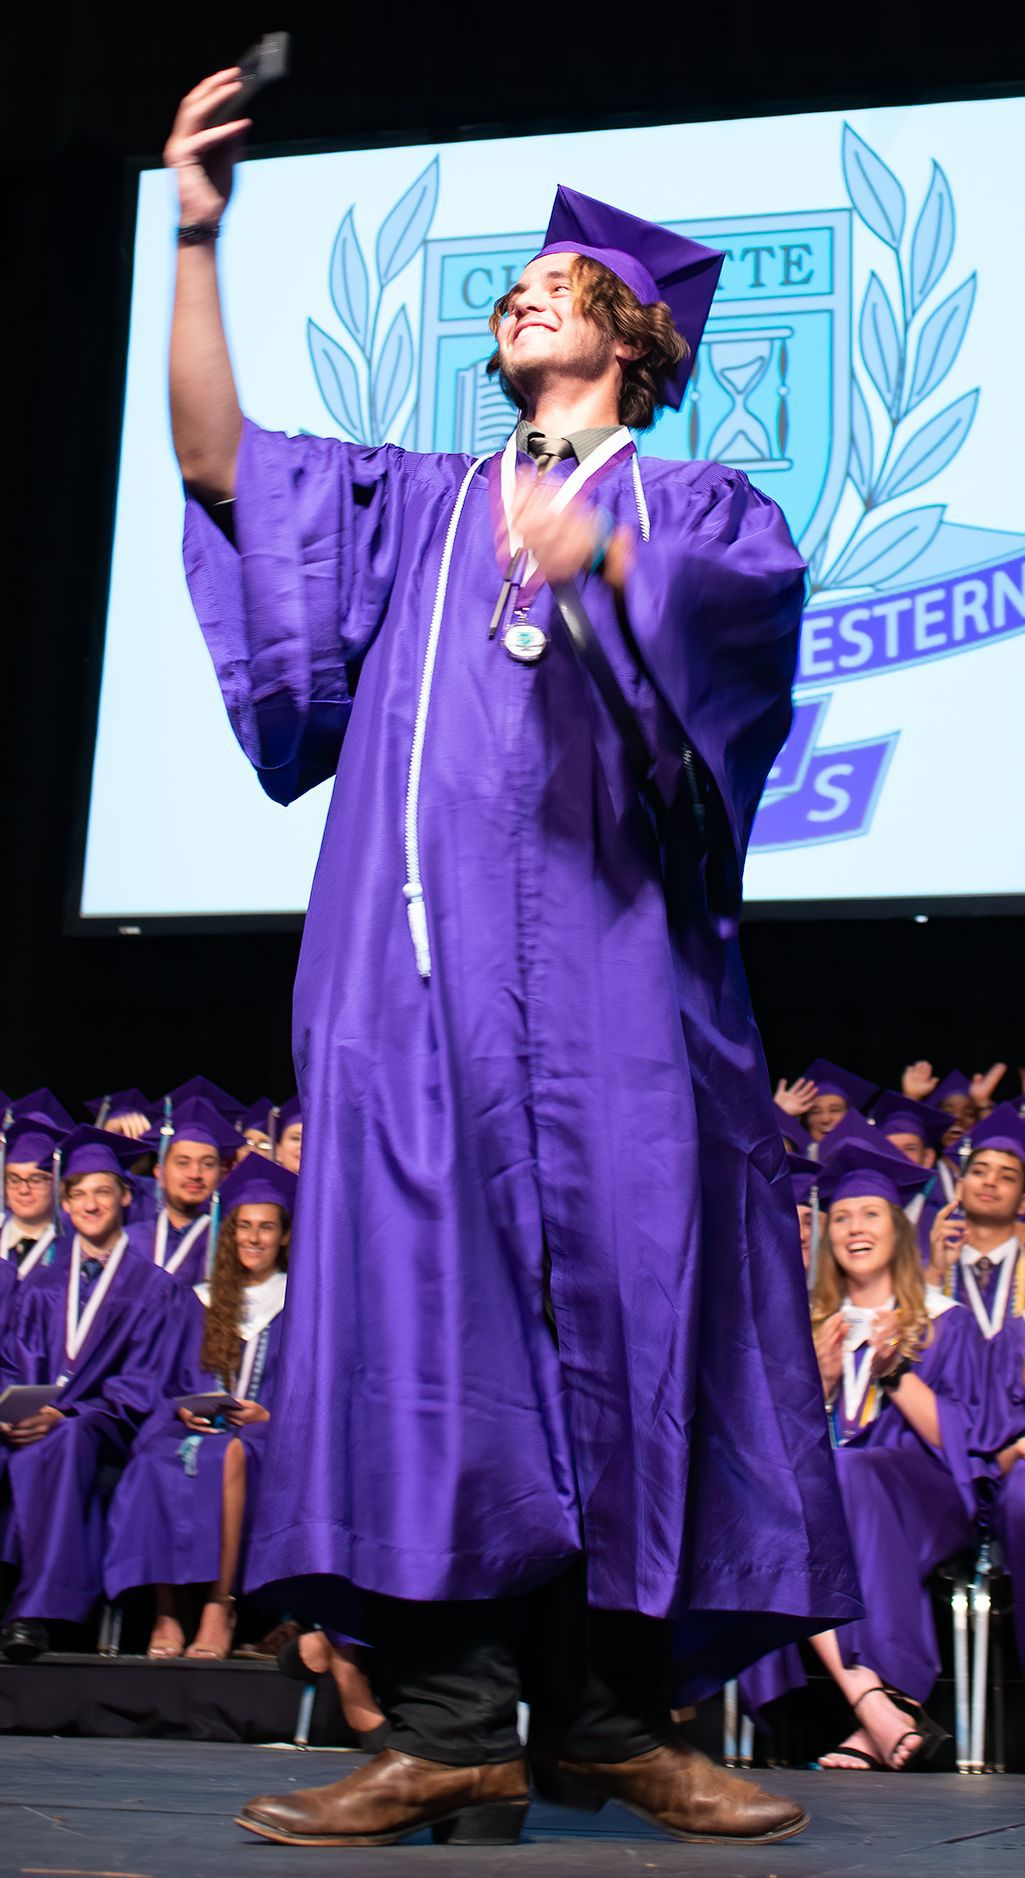 Florida Southwestern Collegiate High School Class graduation